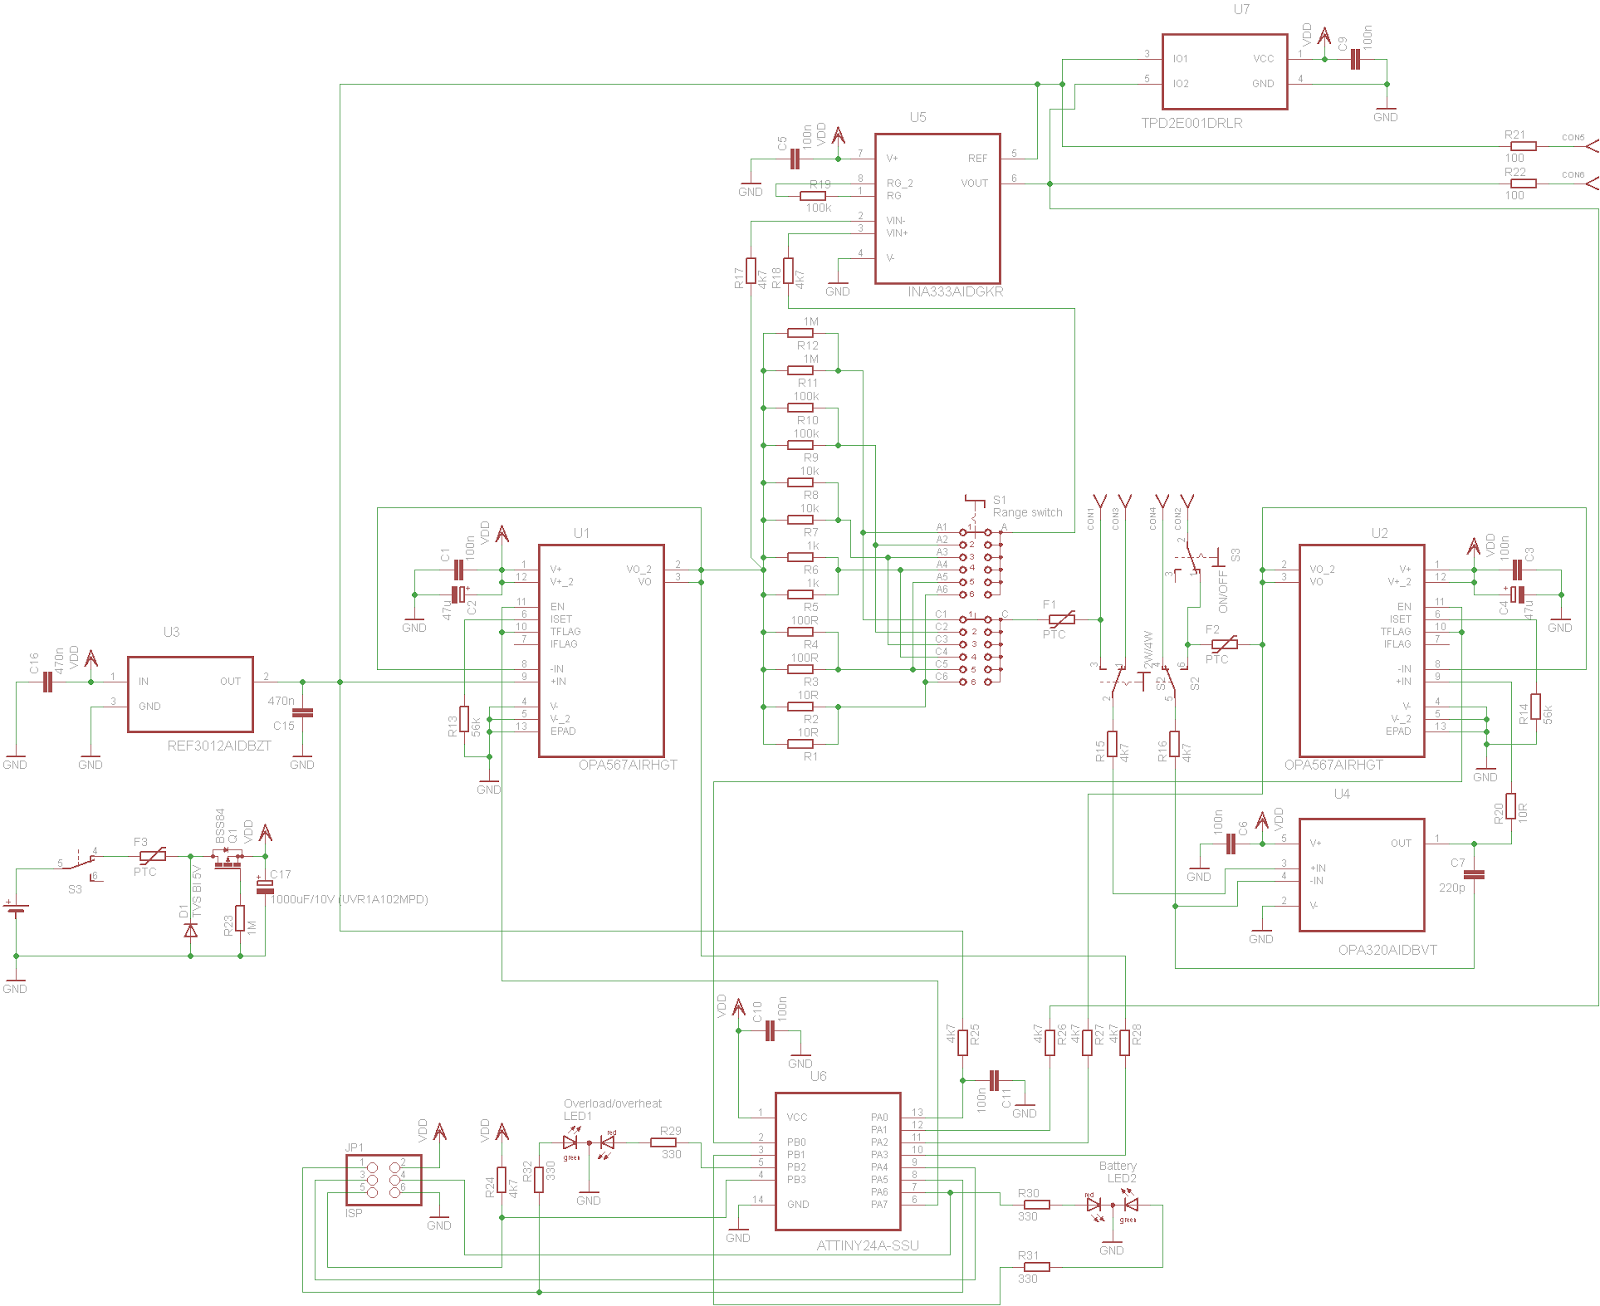 Kaktus Circuits Building A 100 Ma Transimpedance Amplifier Electronic And Diagram Figure 2 Complete Schematic Of My